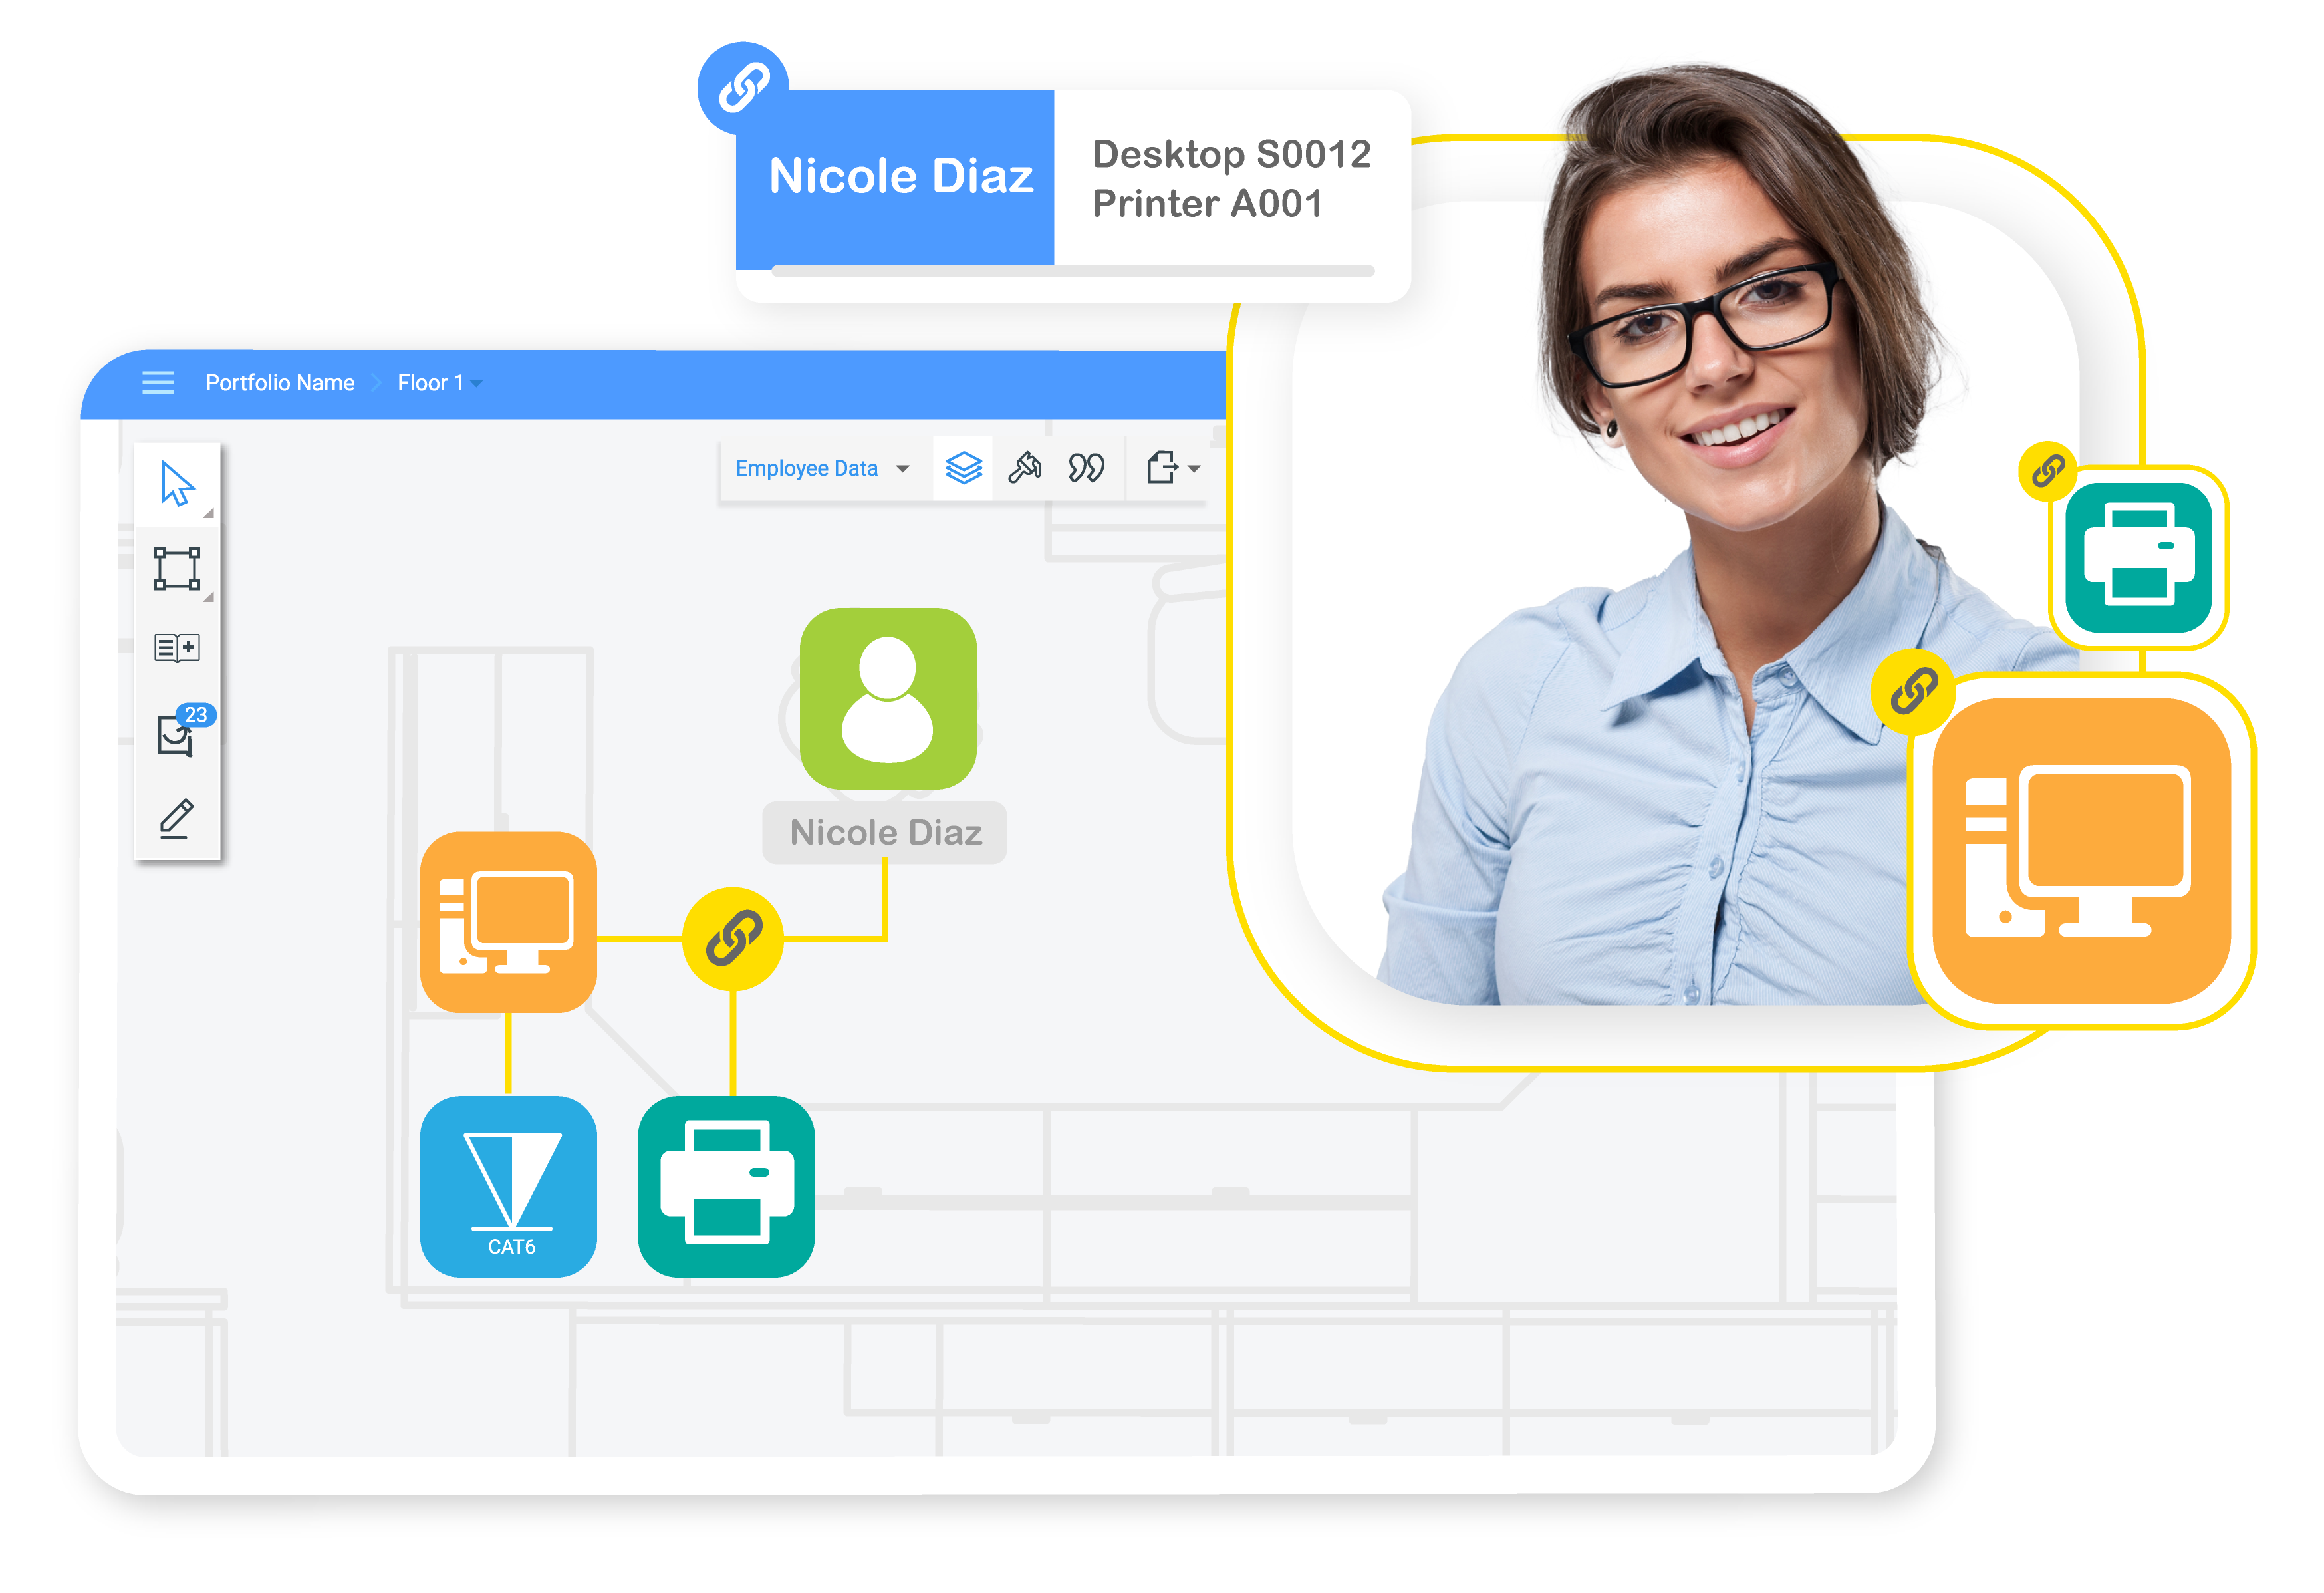 SpaceRunner Software - Links represent connections among people or objects, helping you get visual insights instantly.